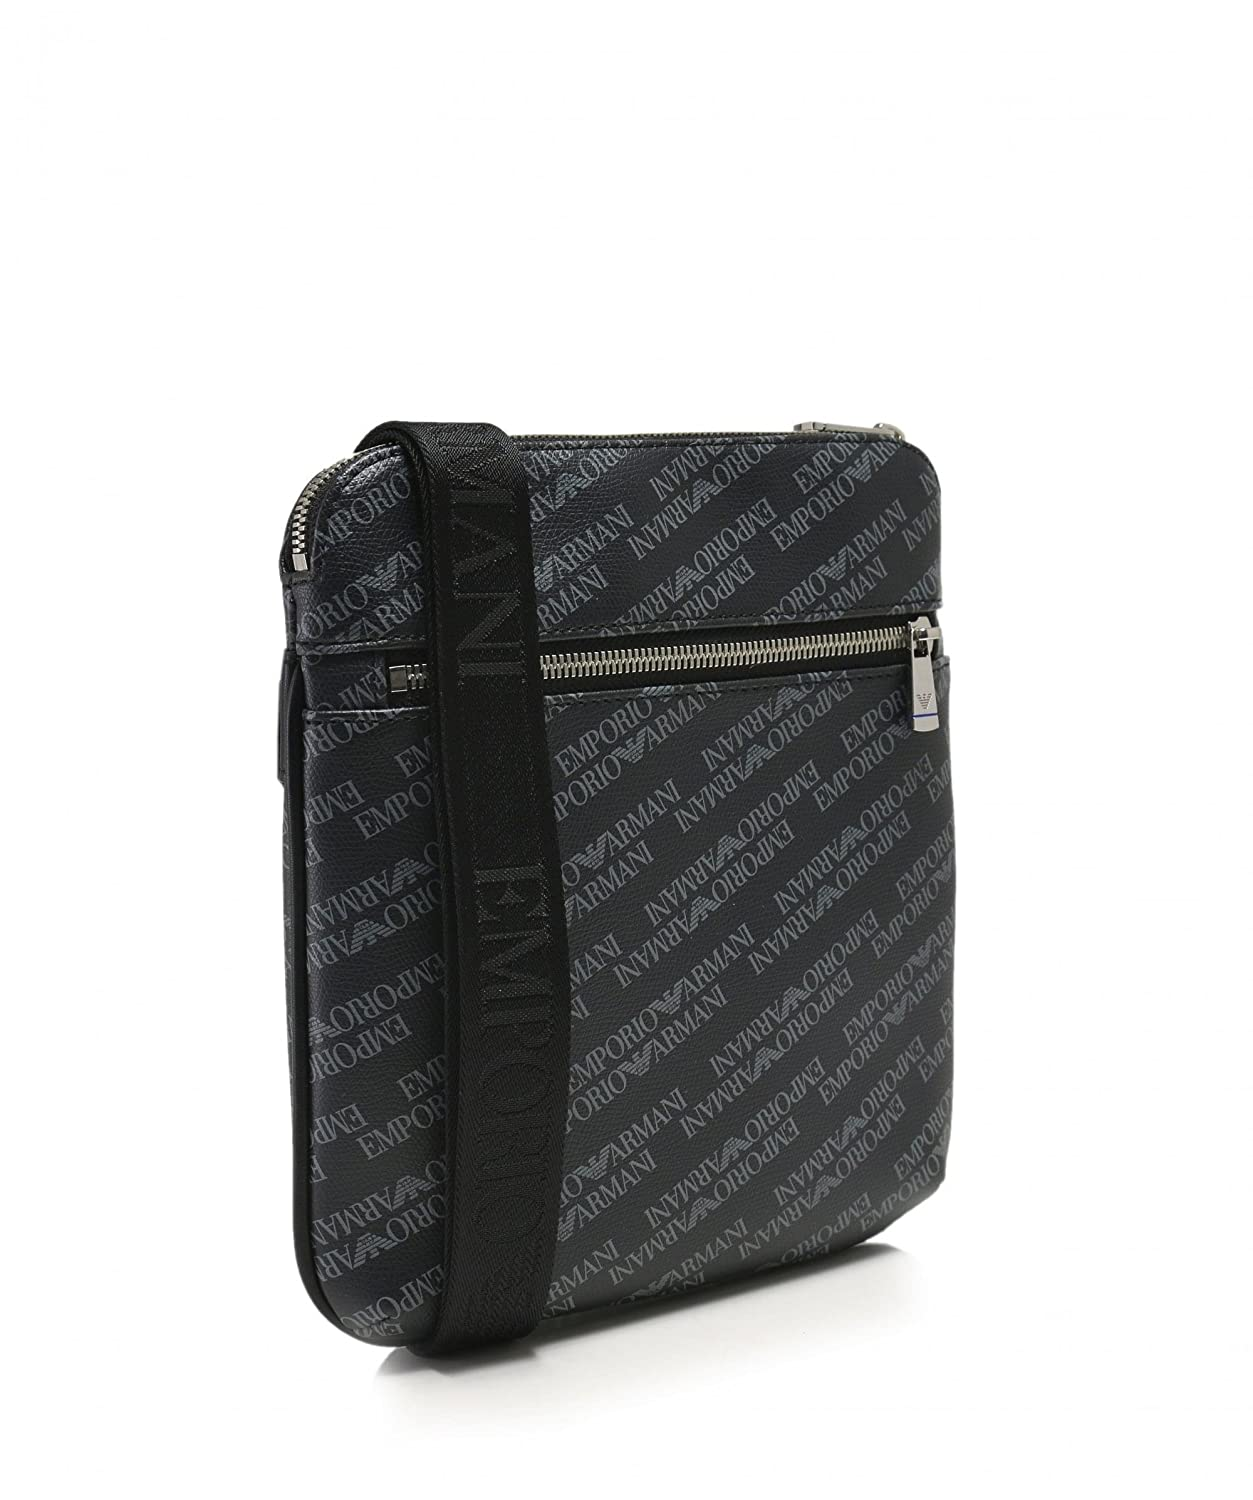 EMPORIO ARMANI Logo Print Pouch Black One Size  Armani  Amazon.co.uk   Clothing 45b117d5d1558